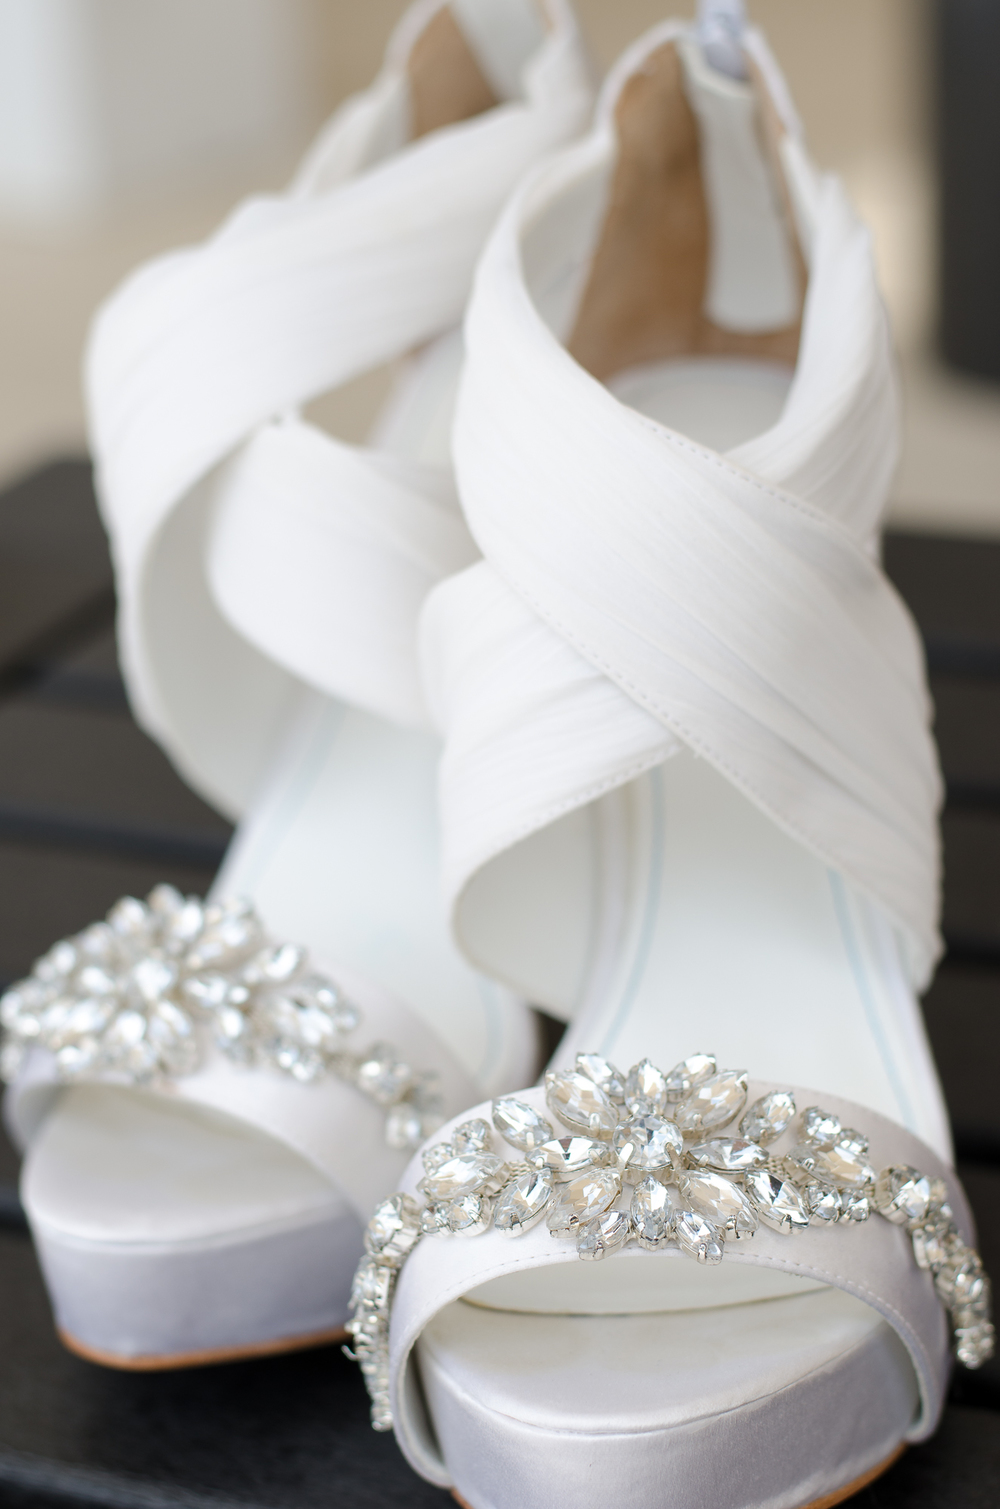 Catoctin Hall at Musket Ridge Wedding Bride Shoes Photo